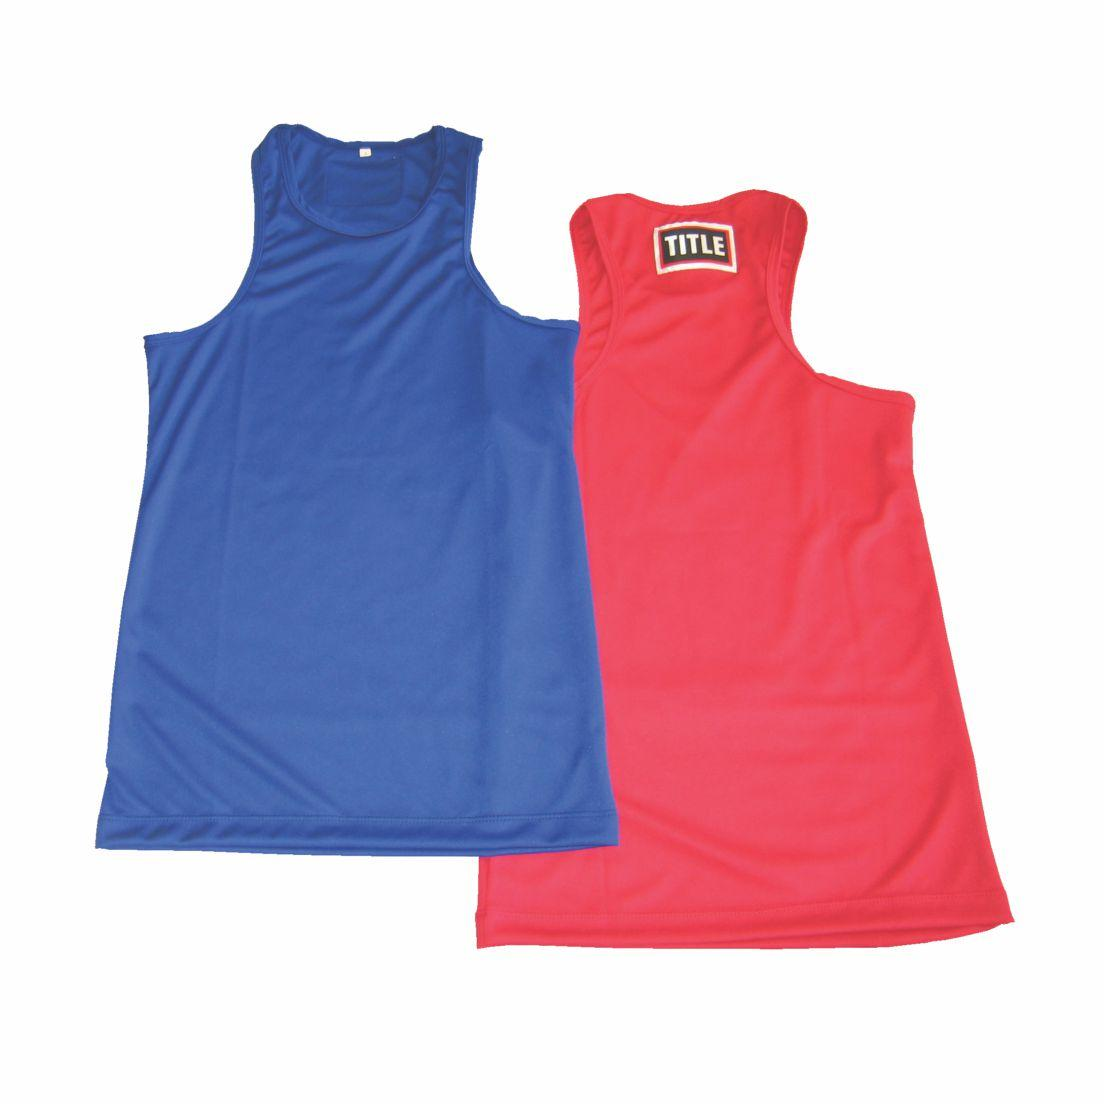 Boxing Vests (cotton)